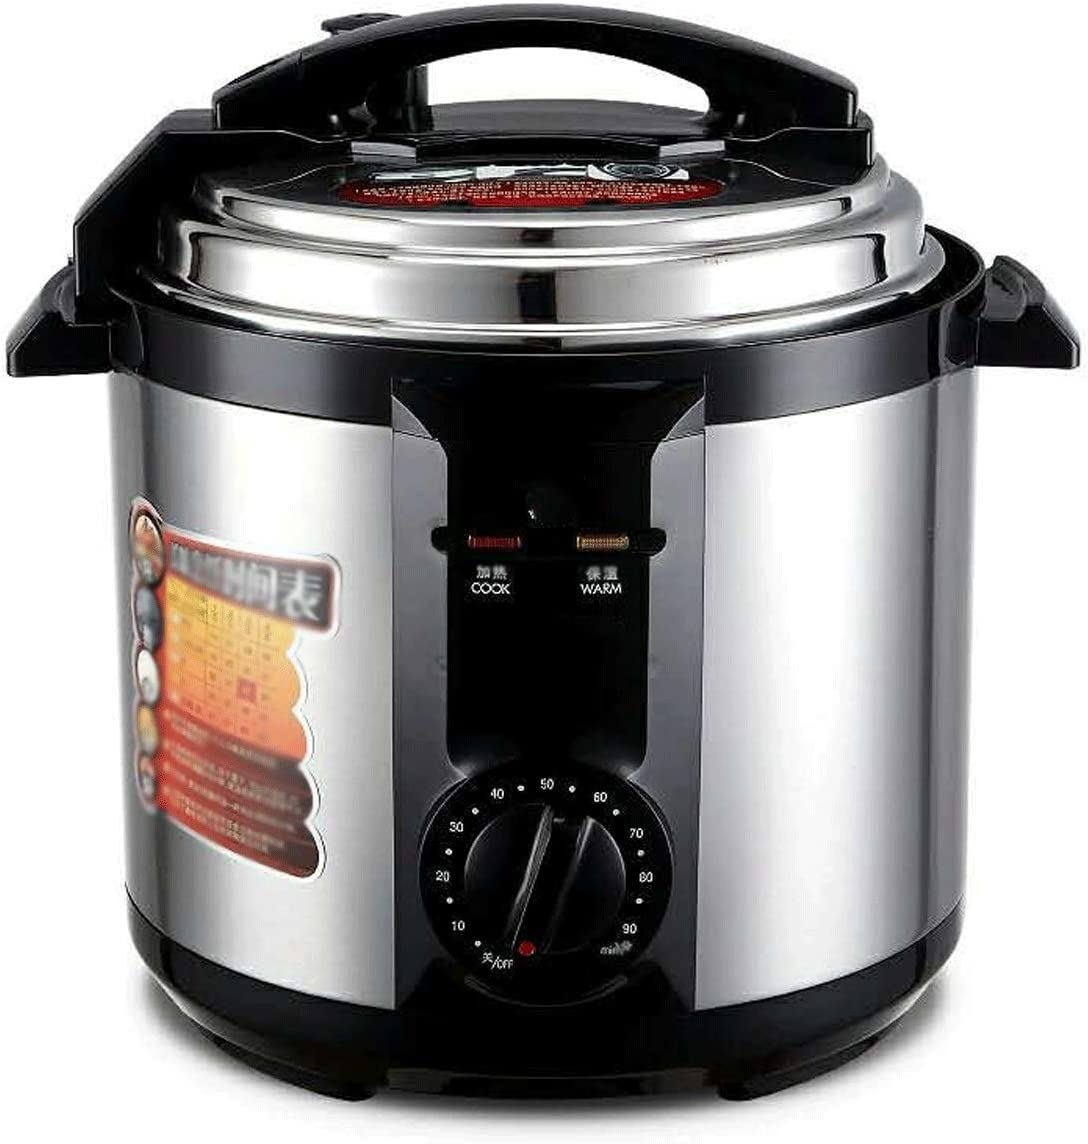 Z-COLOR Multi-Purpose Electric Steamer, Pressure Cooker, 6 Litre, 1000 W, Brushed Stainless Steel, Smart Appointment Cooking Soup Pot